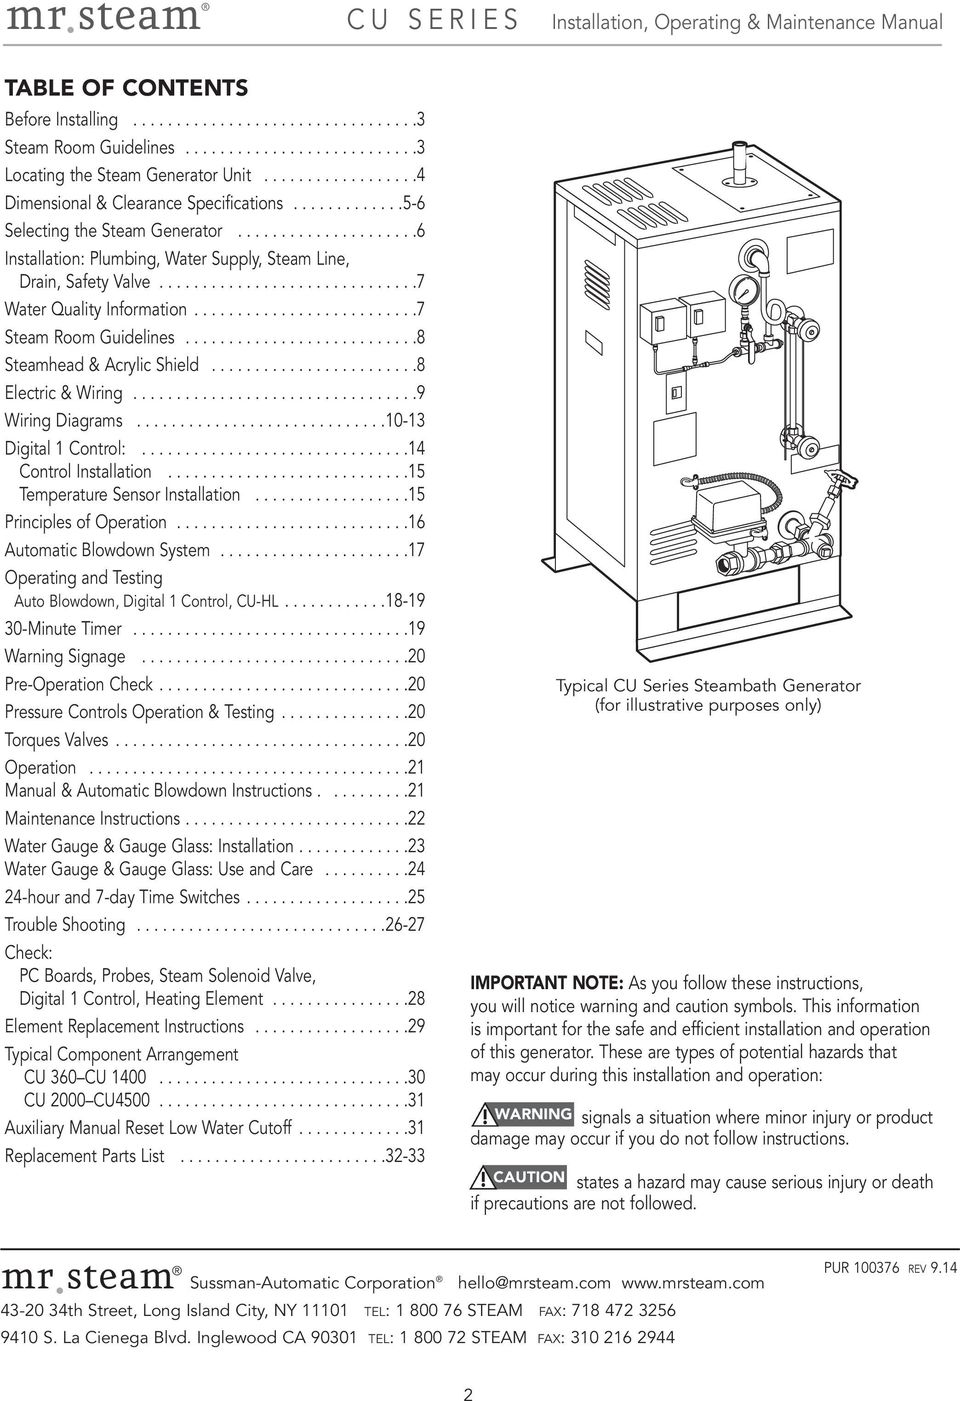 Installation Operation Maintenance Manual Mrsteam Feel Good Thread Switch Wiring Diagram For Mr Board With 4 Wire 3